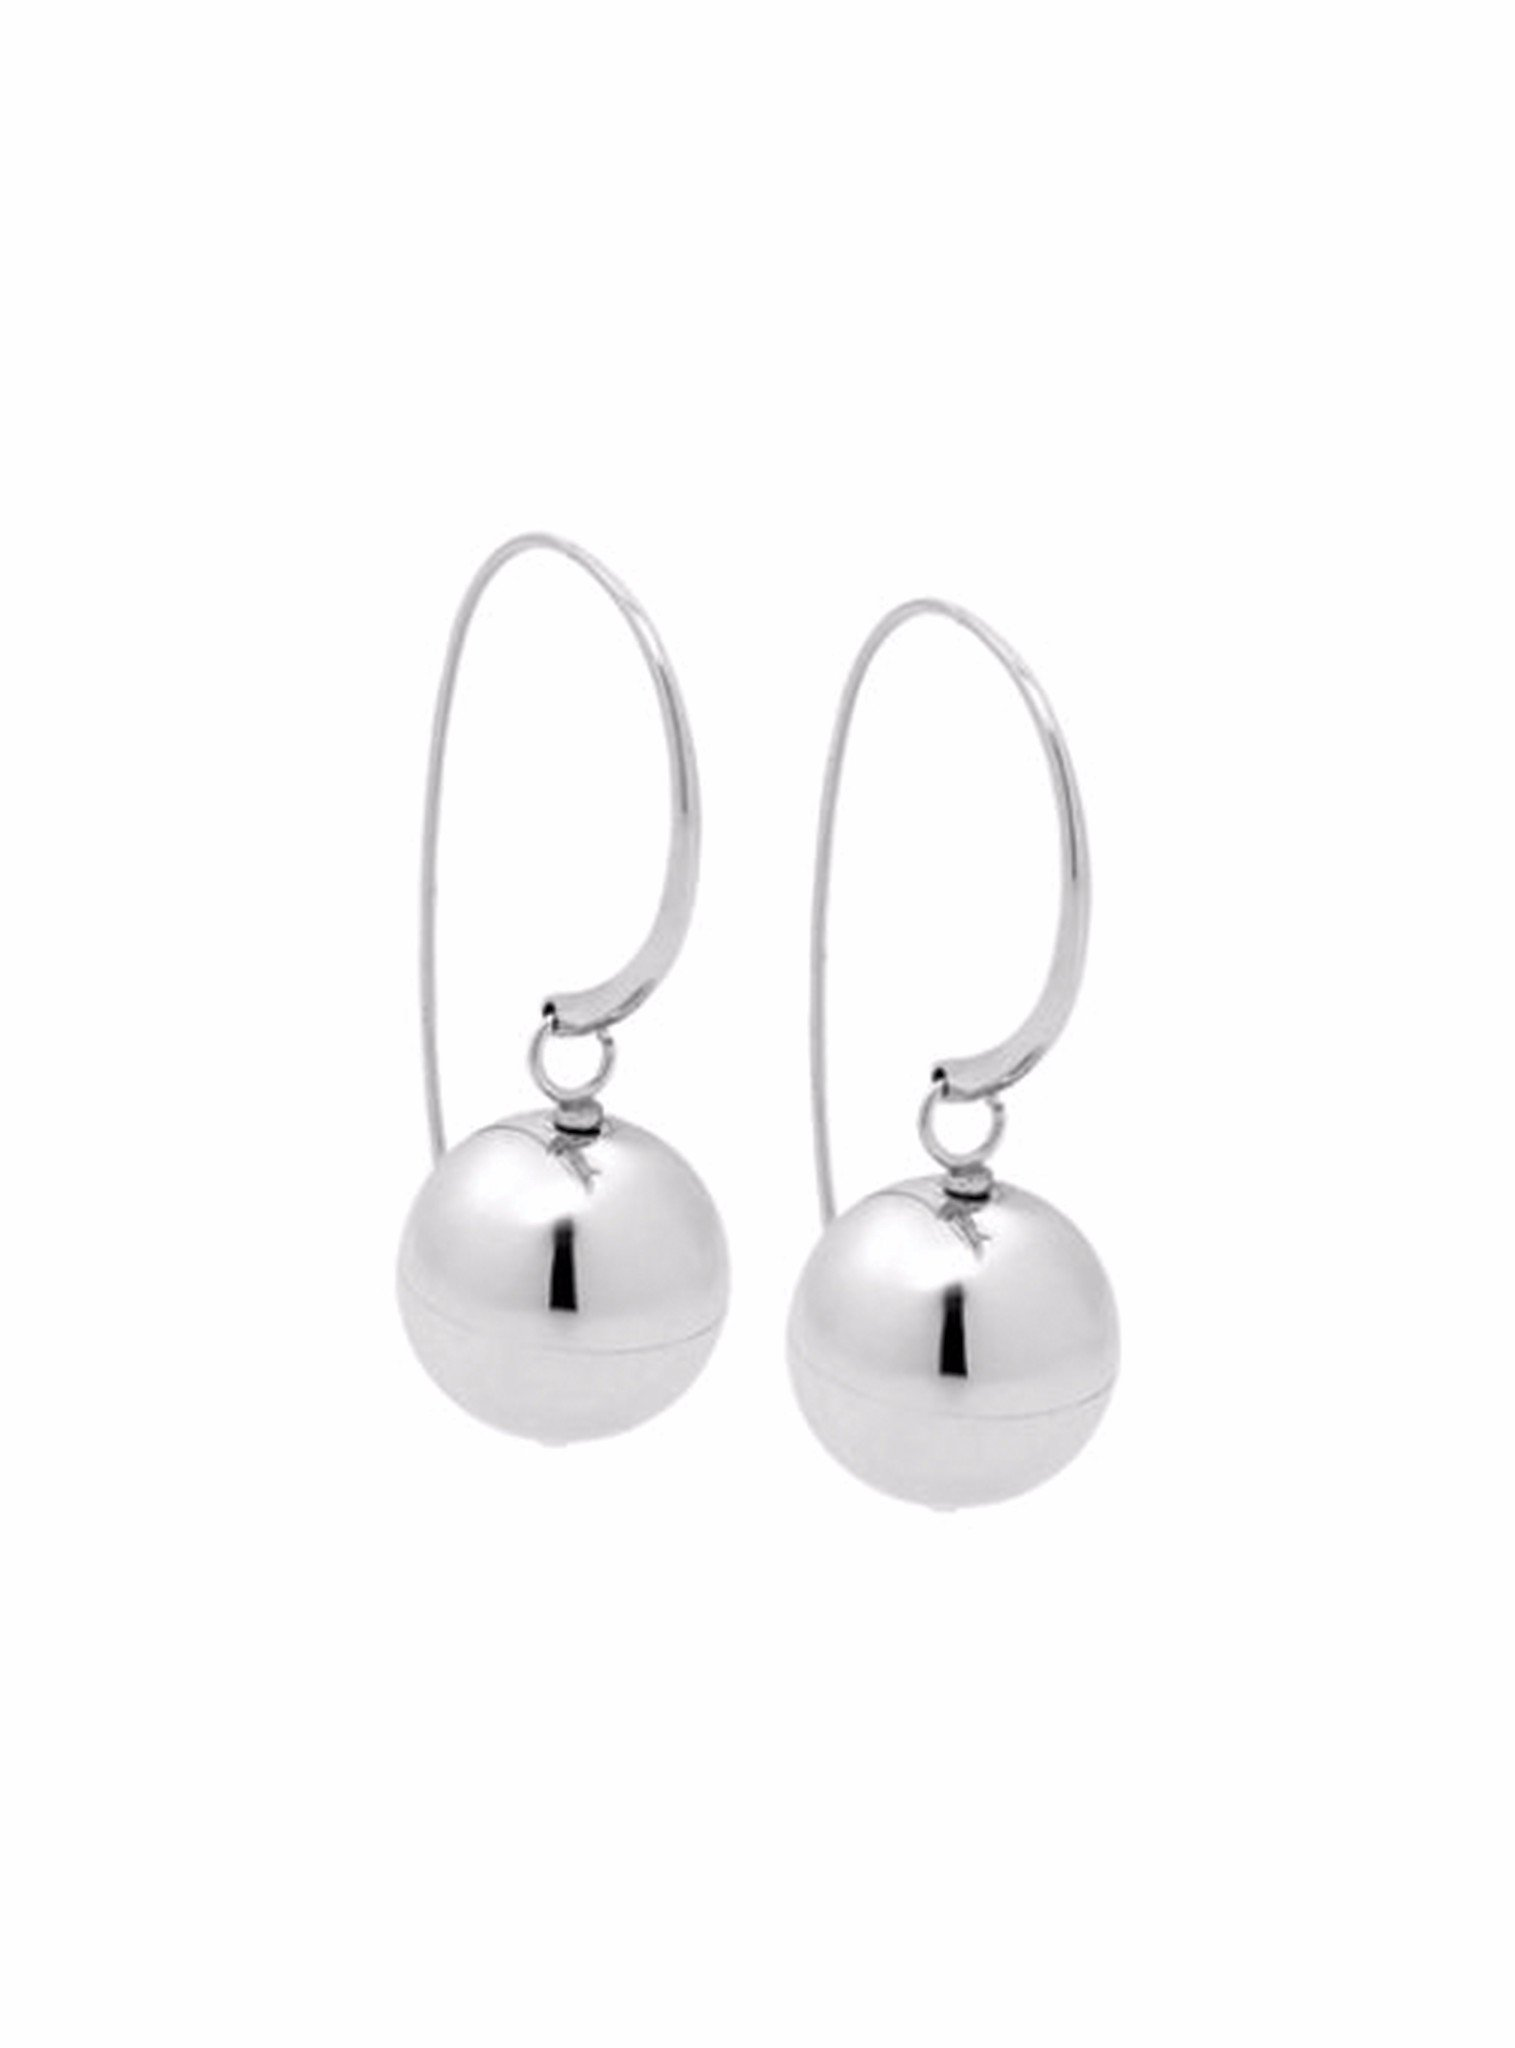 Silver Stainless Steel Ball Drop Earrings